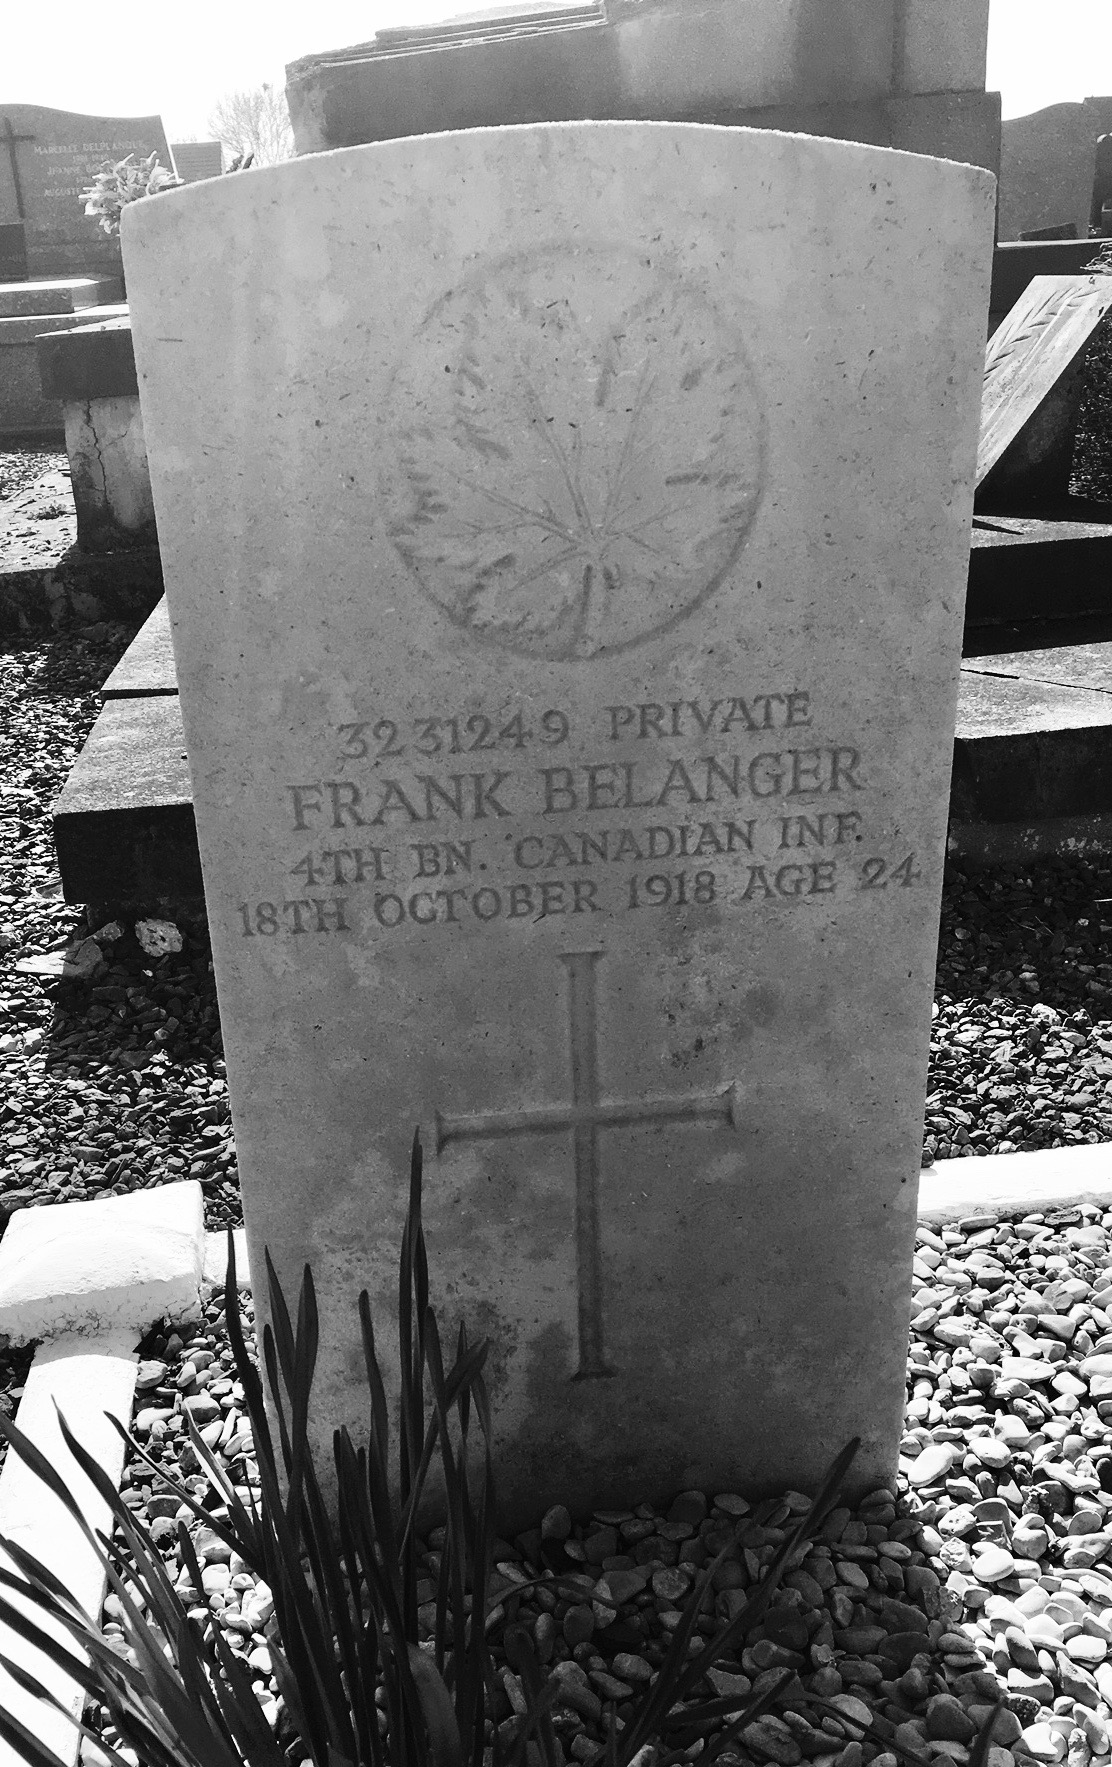 Grave Marker– Headstone for Private Frank Belanger in PECQUENCOURT COMMUNAL CEMETERY ; Nord, France